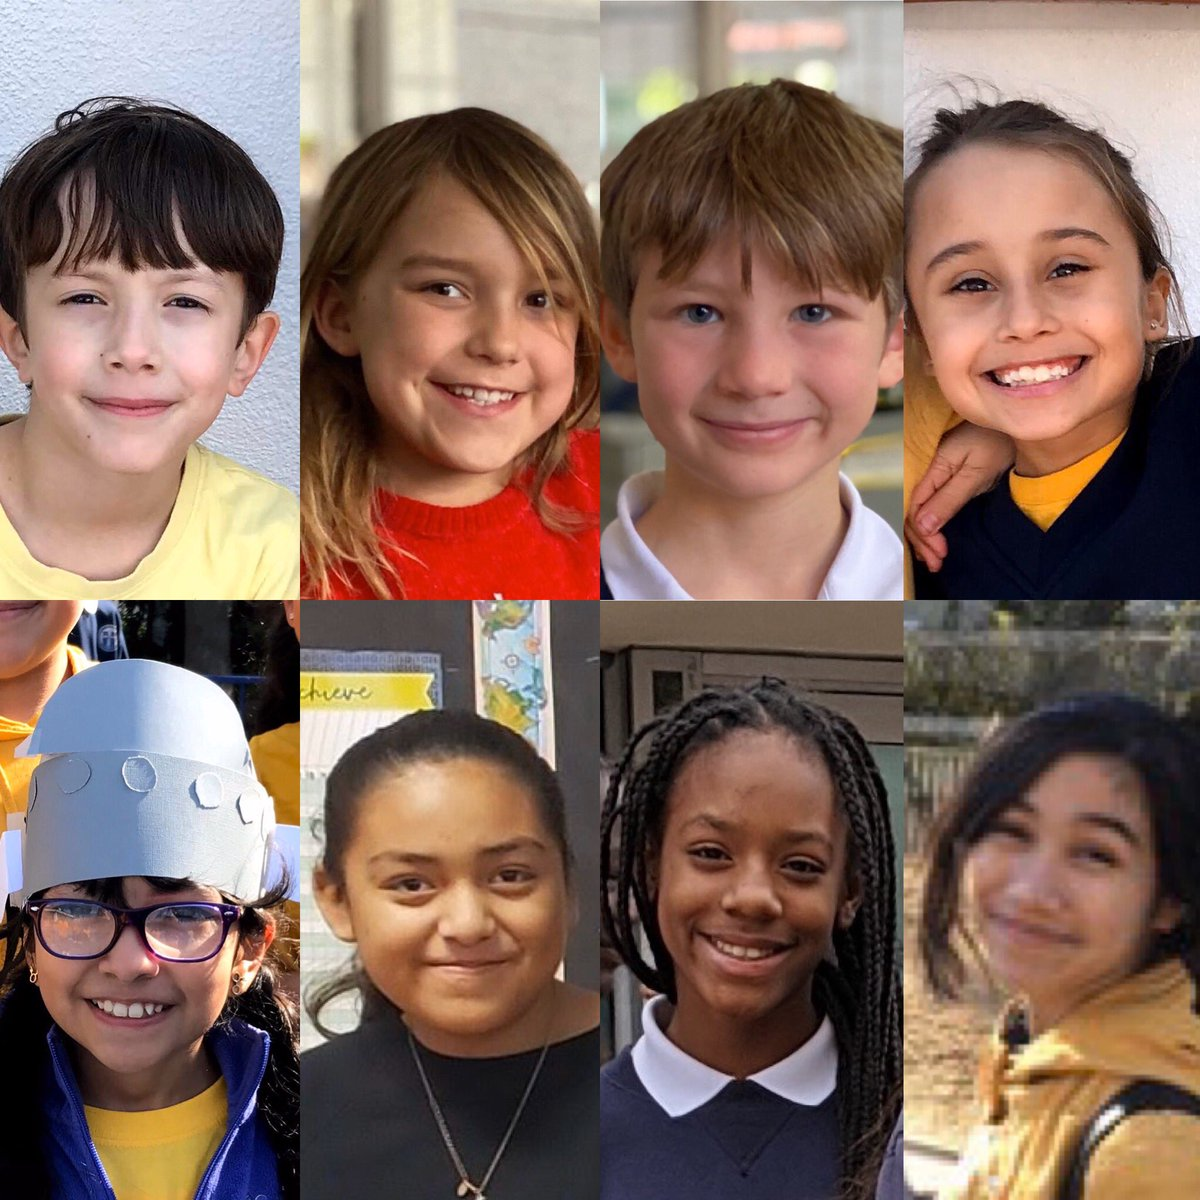 Congratulations to these Saint Anne School artists, all of whom were finalists in the City of #SantaMonica Fair Housing Poster Contest! Well done, Vikings! #sas_vikingspic.twitter.com/AIothI7cLO